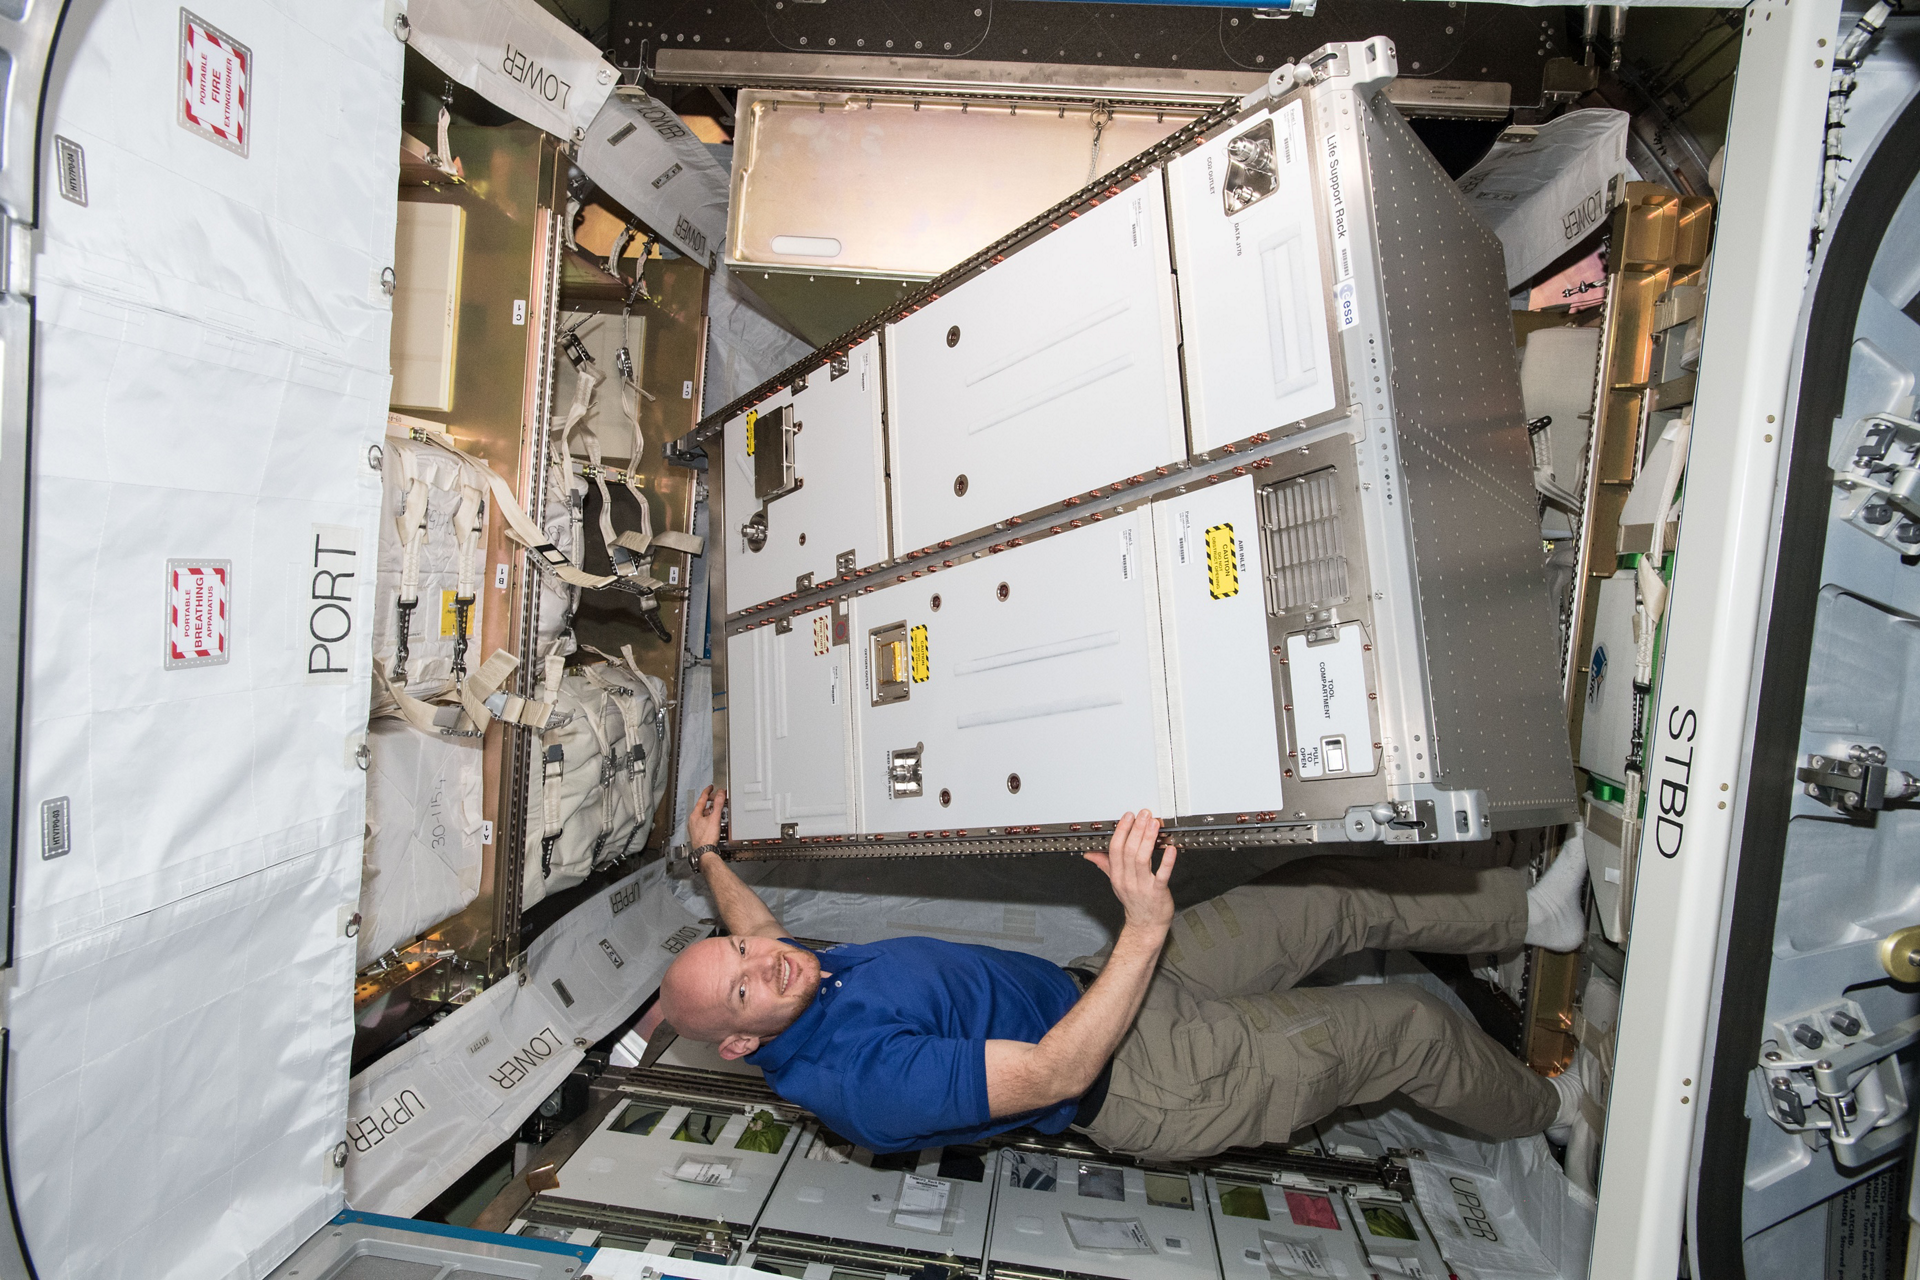 Astronaut Alexander Gerst with the ACLS rack